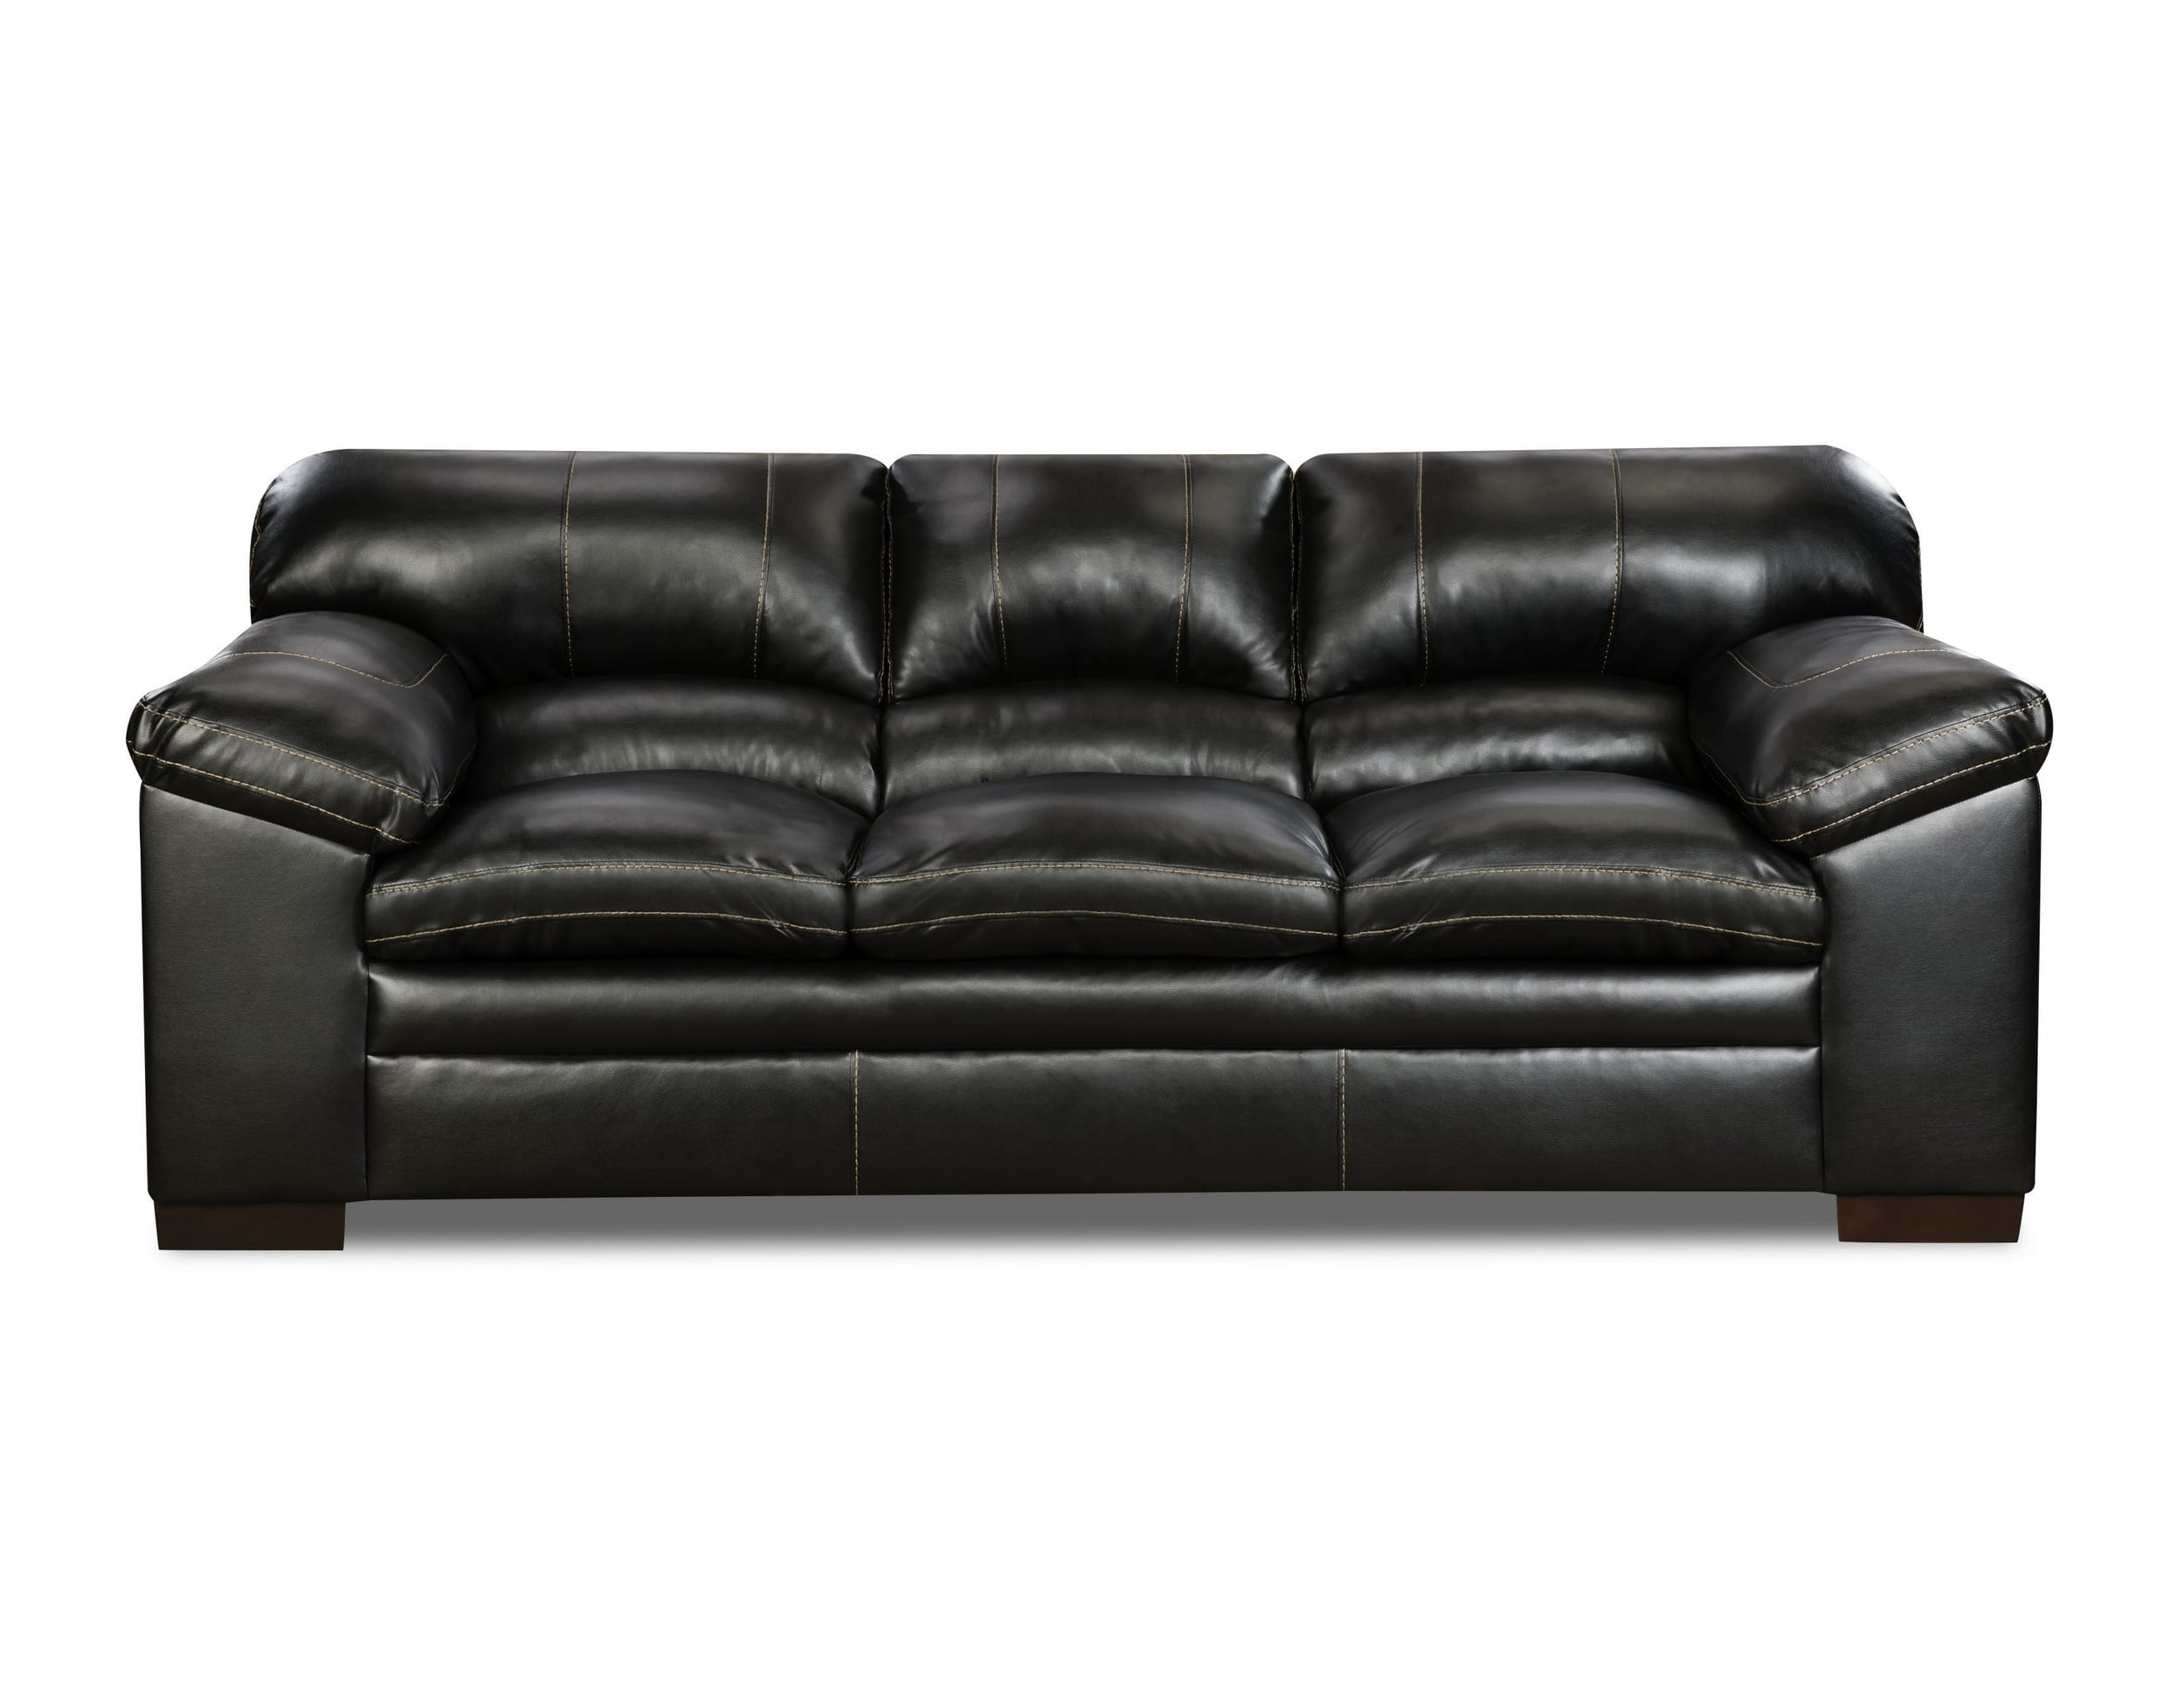 Review 4x6 Sofa Simmons Upholstery 8049 03 Yahtzee Onyx